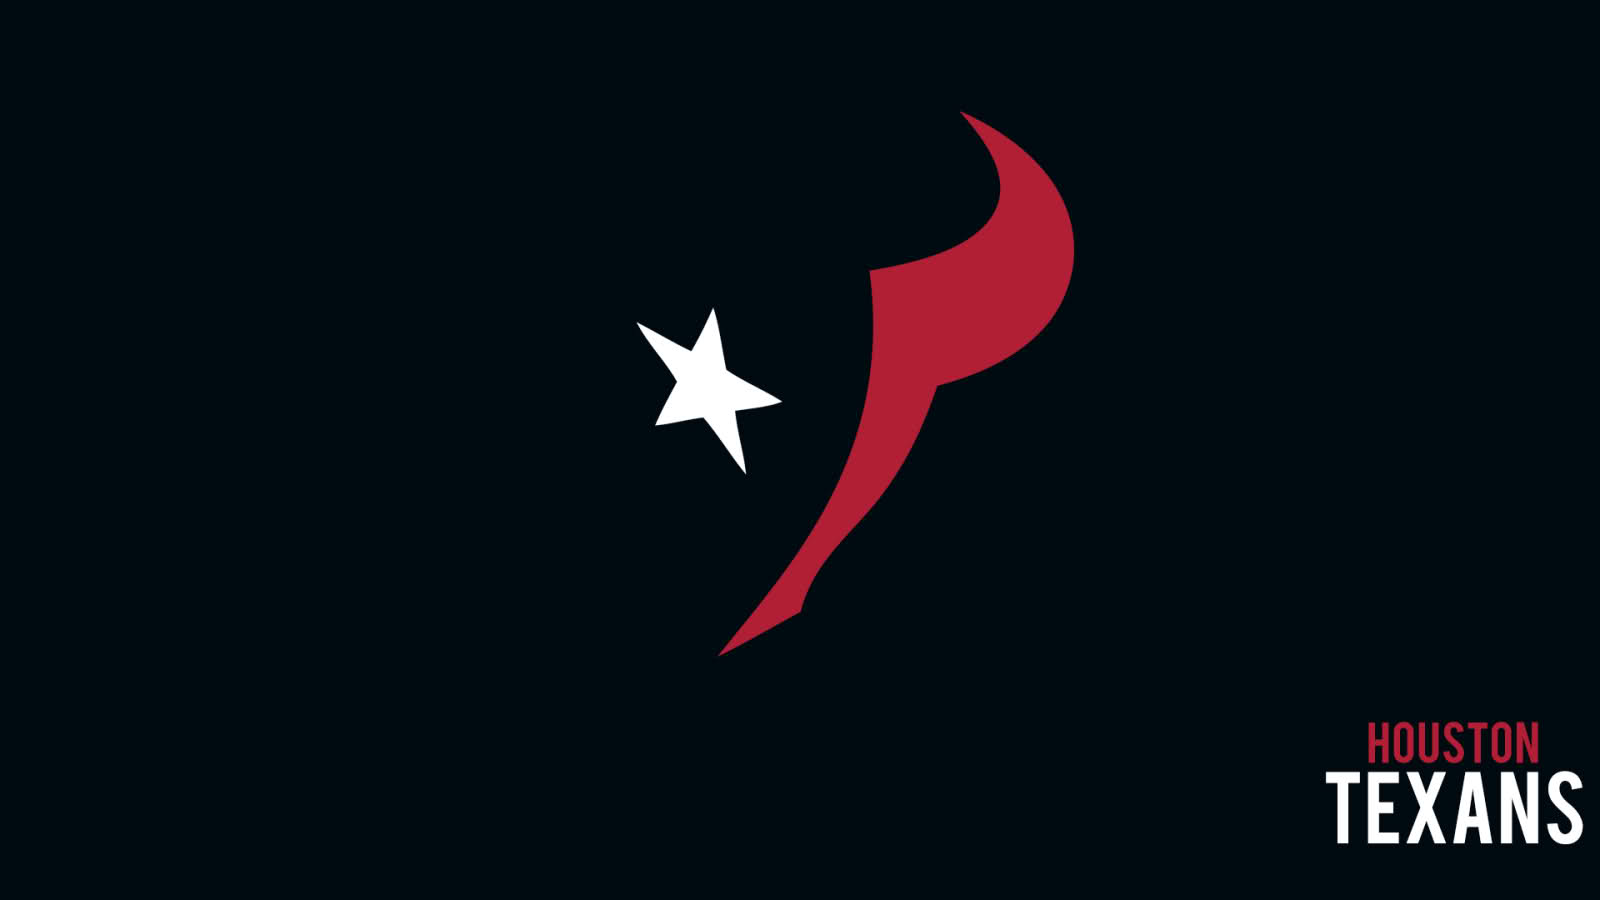 Houston Texans Wallpaper Jj Watt Houston texans hunting buffalo 1600x900